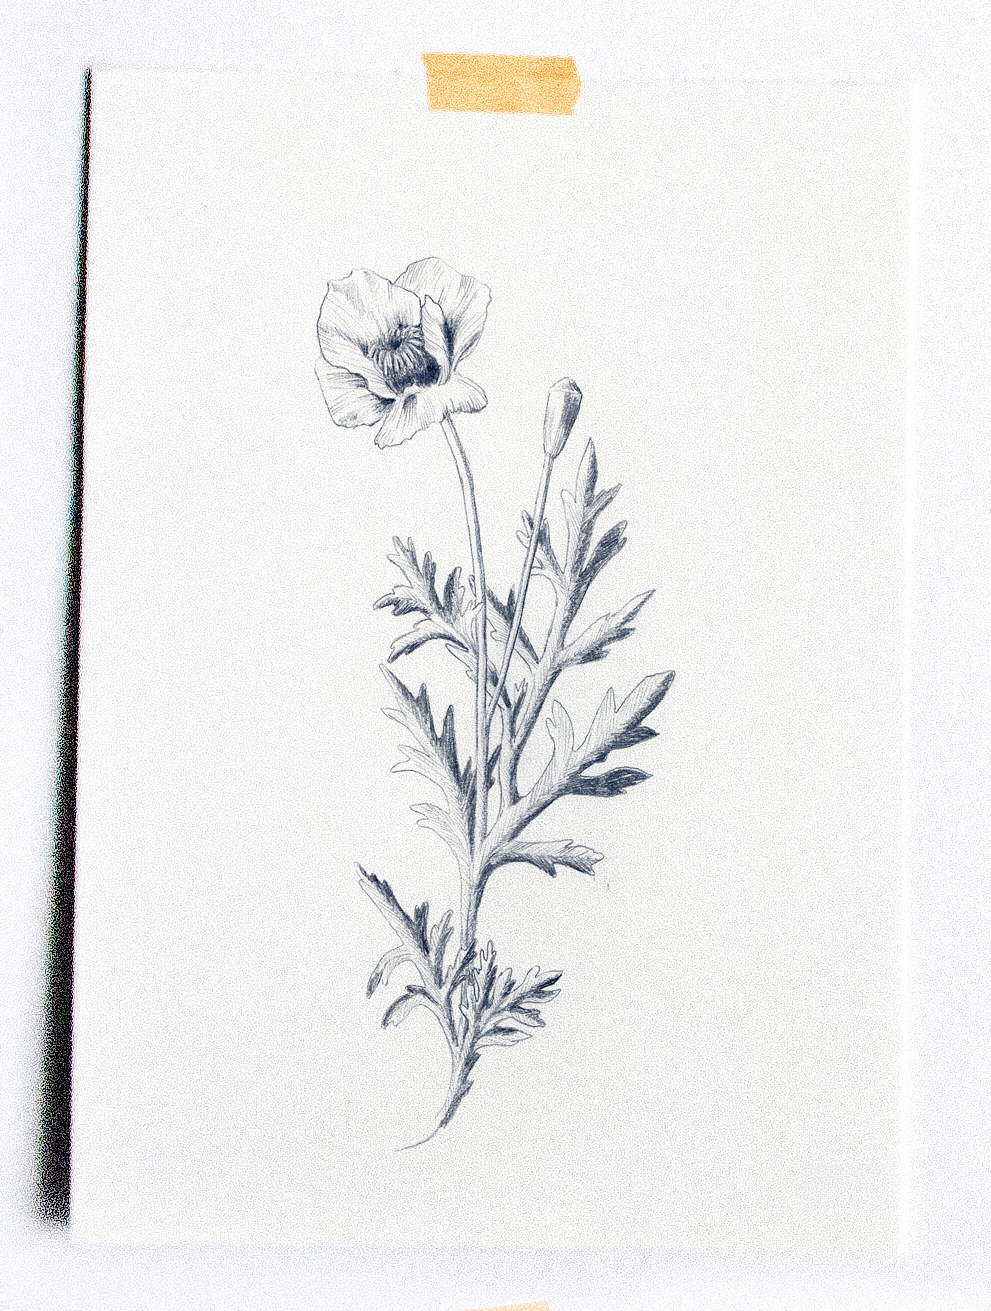 fig. 3. Poppy flower drawing